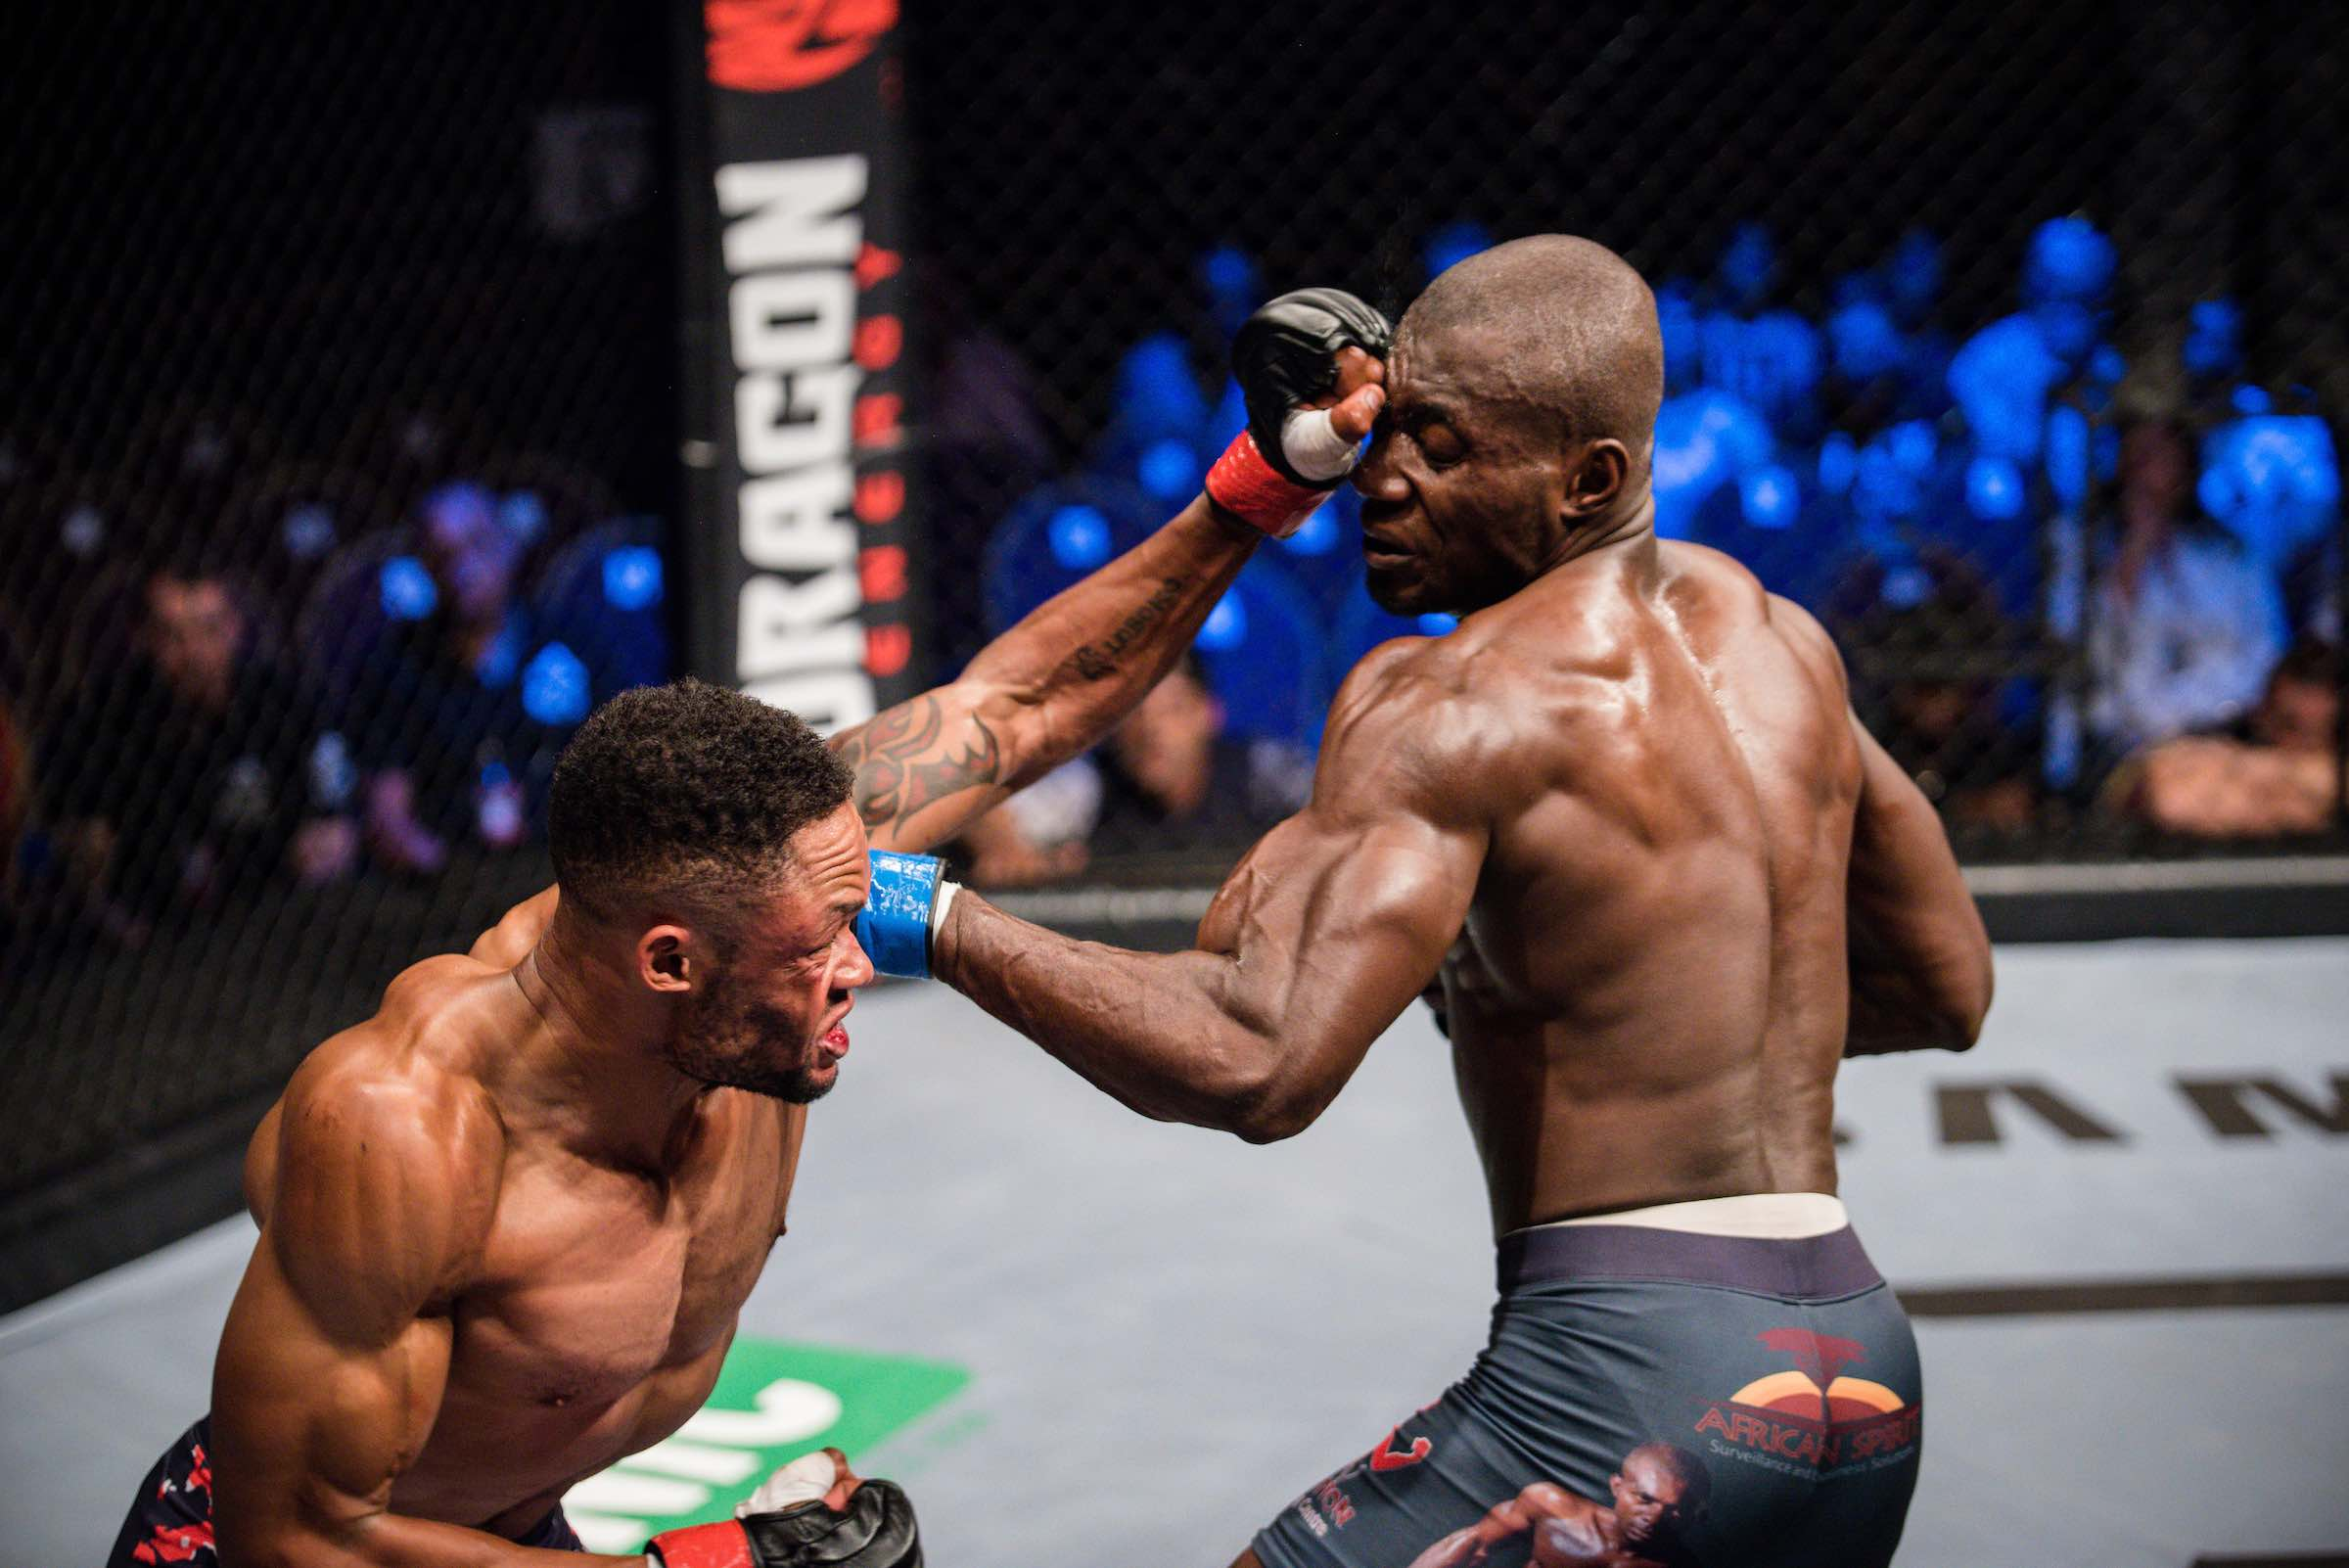 MMA action at its best at EFC 67 from Carnival City